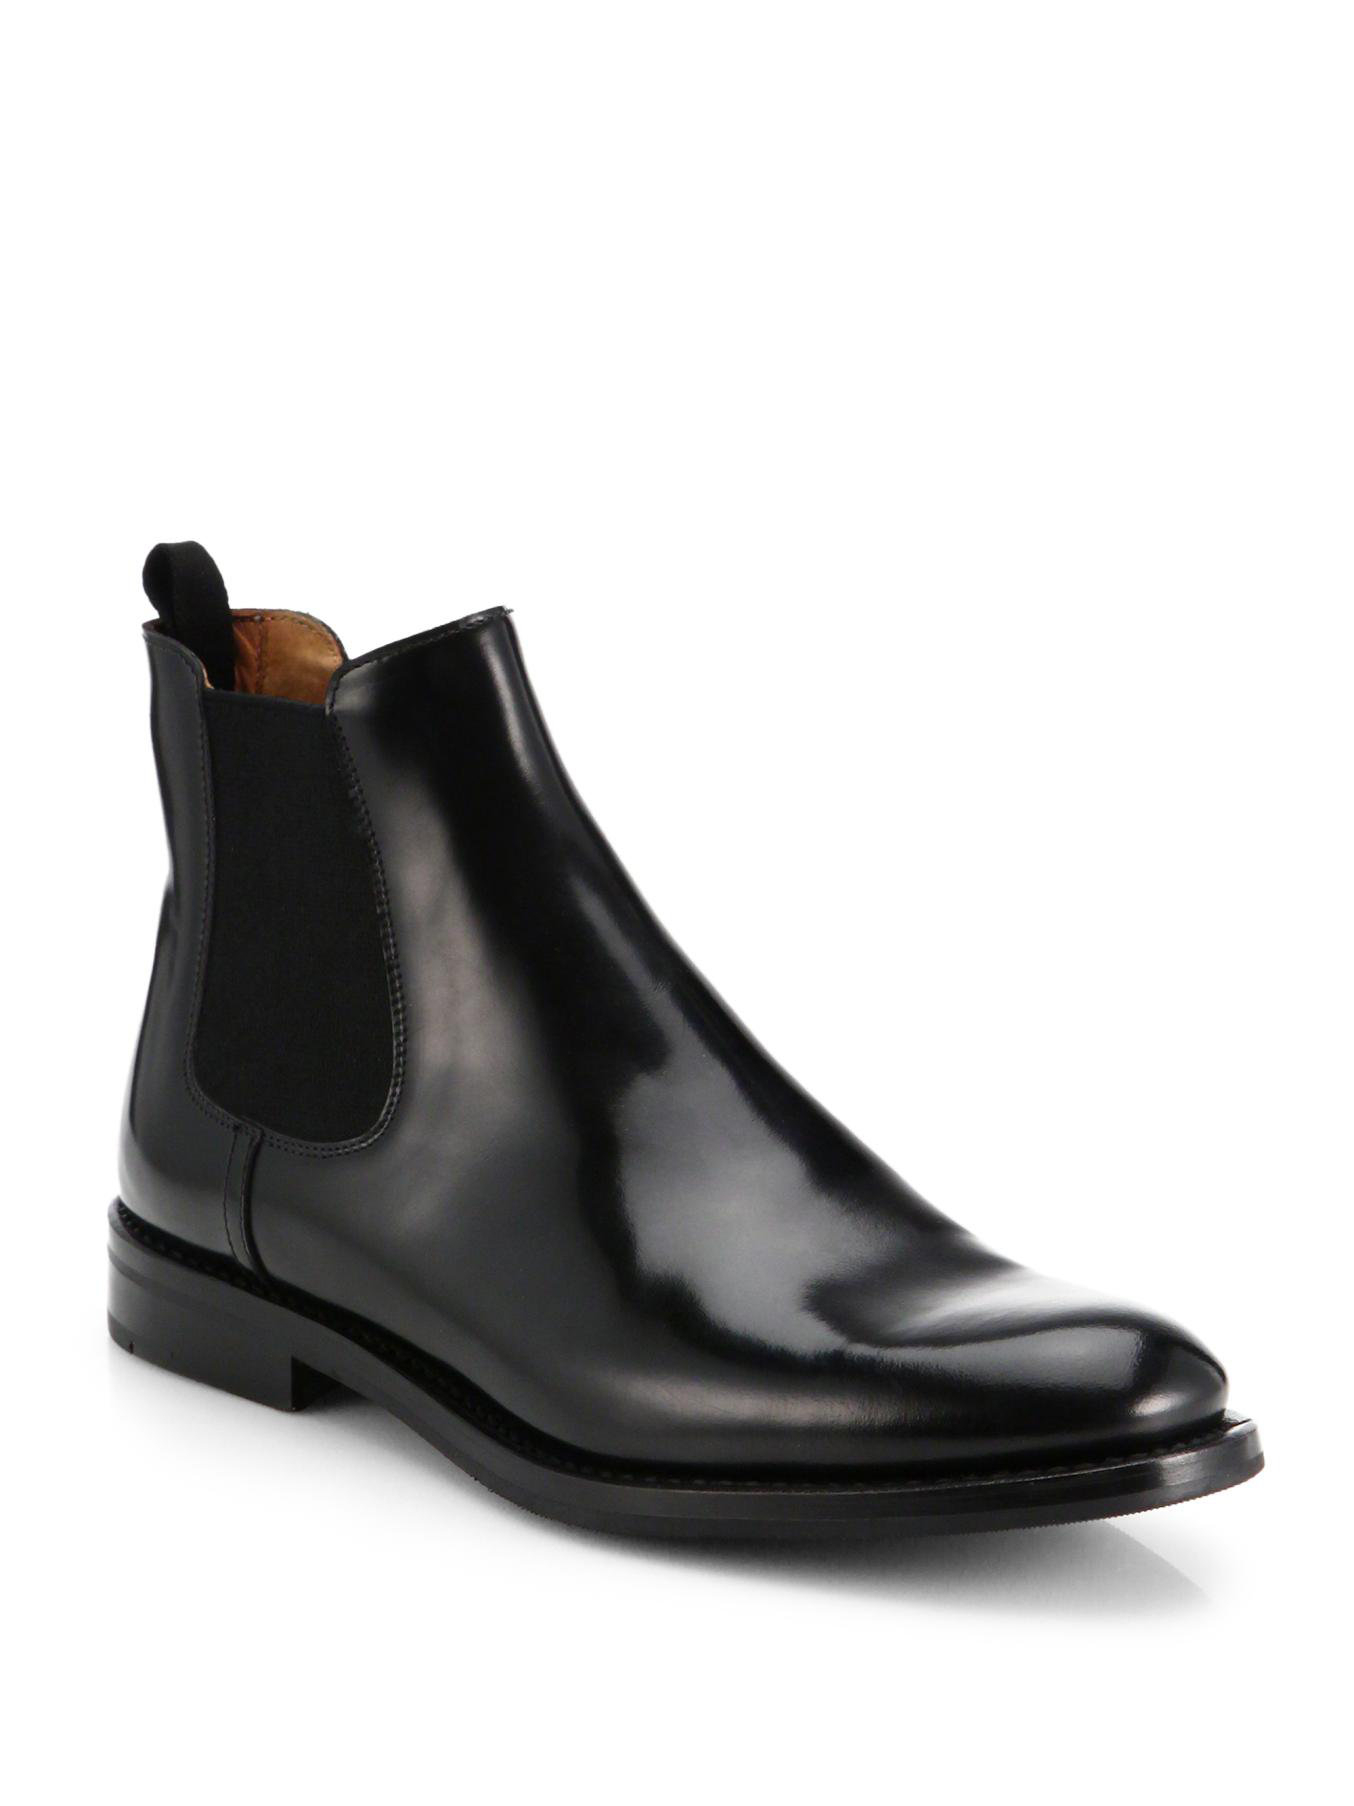 Church's Heeled Chelsea boots NUoohI